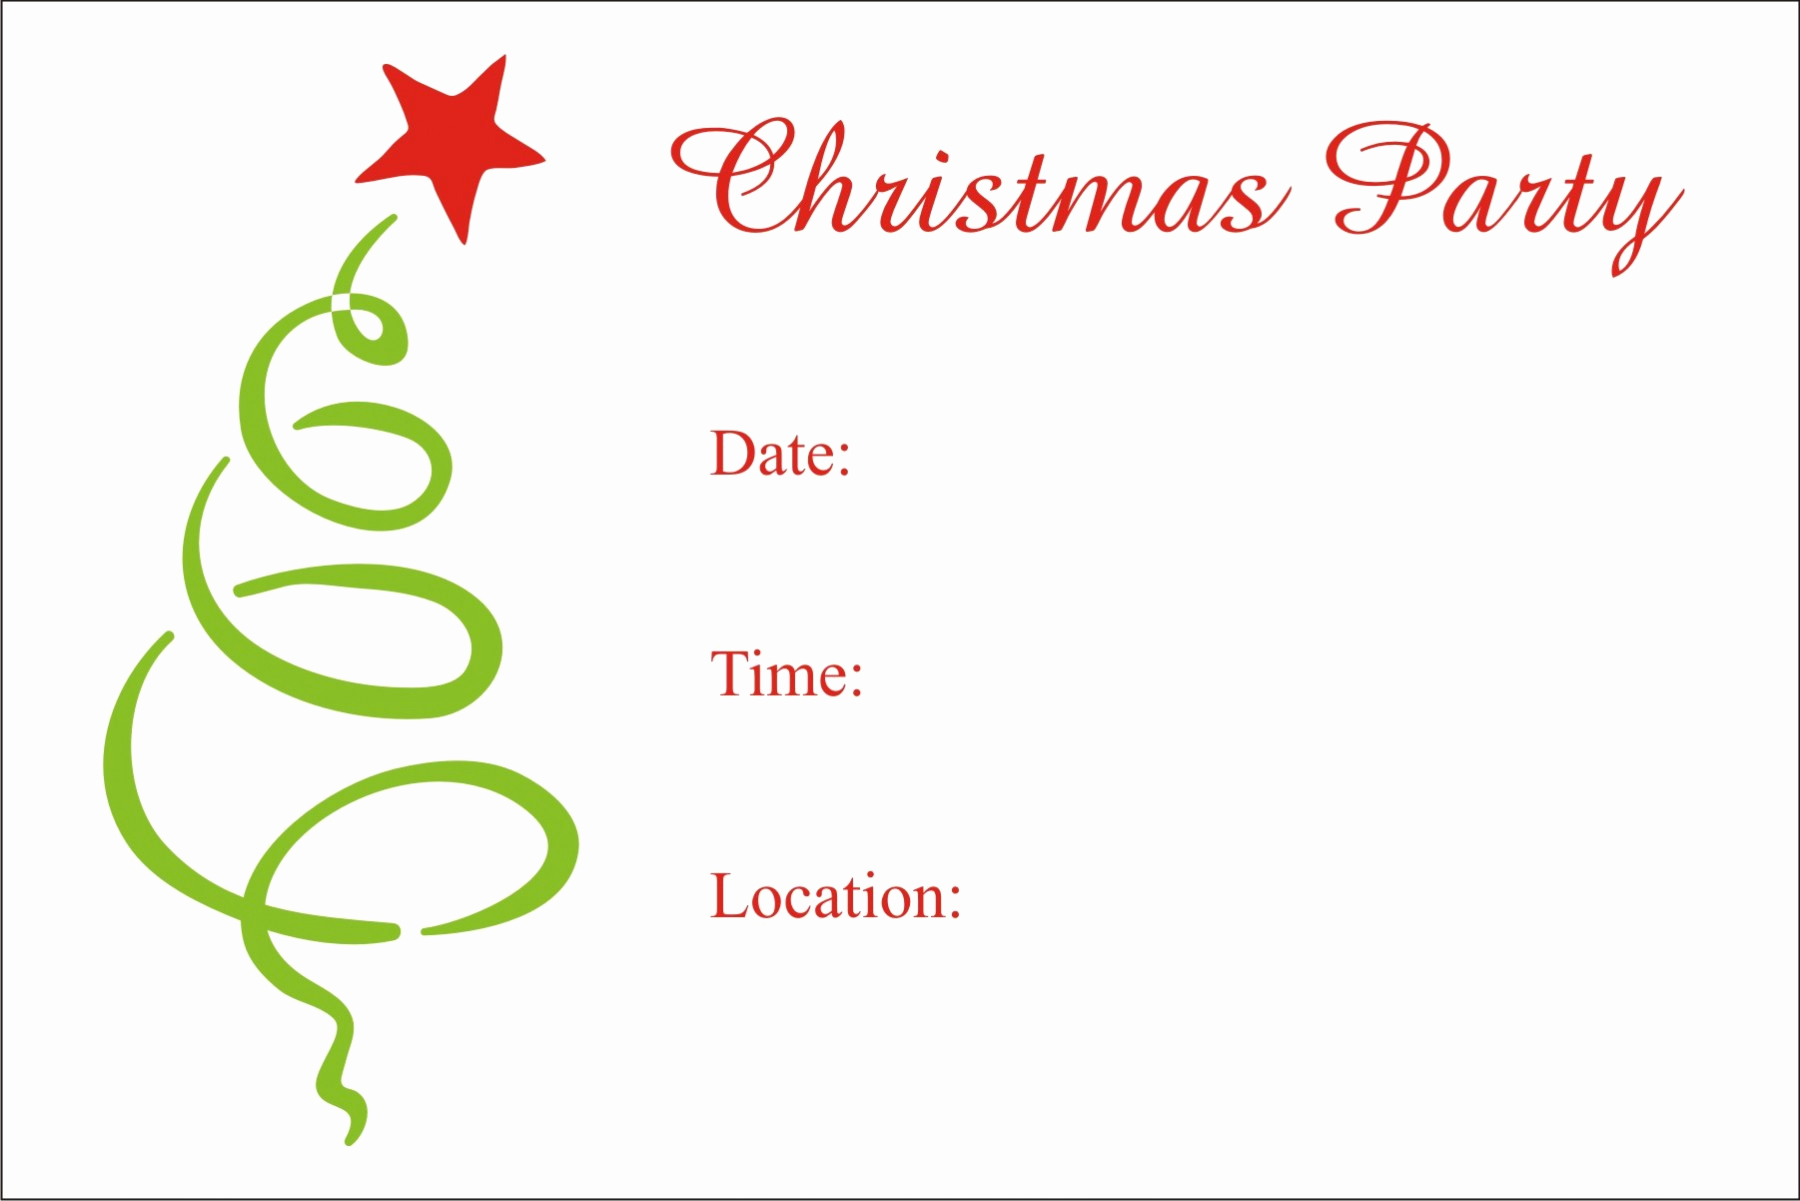 Free Holiday Party Invitation Templates Unique Christmas Party Free Printable Holiday Invitation